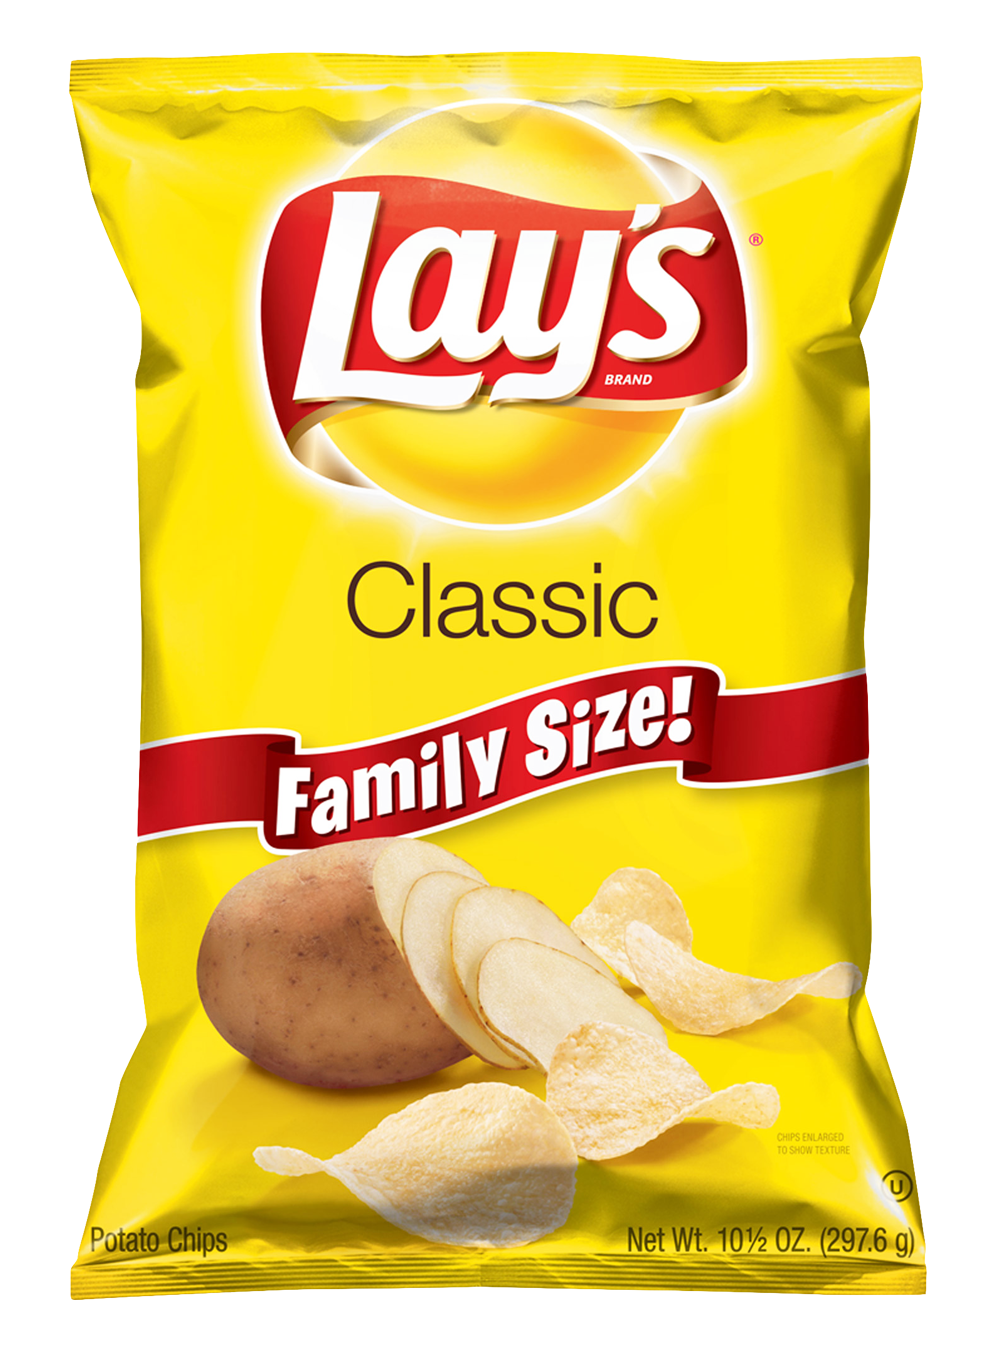 Lays Potato Chips PNG Image.